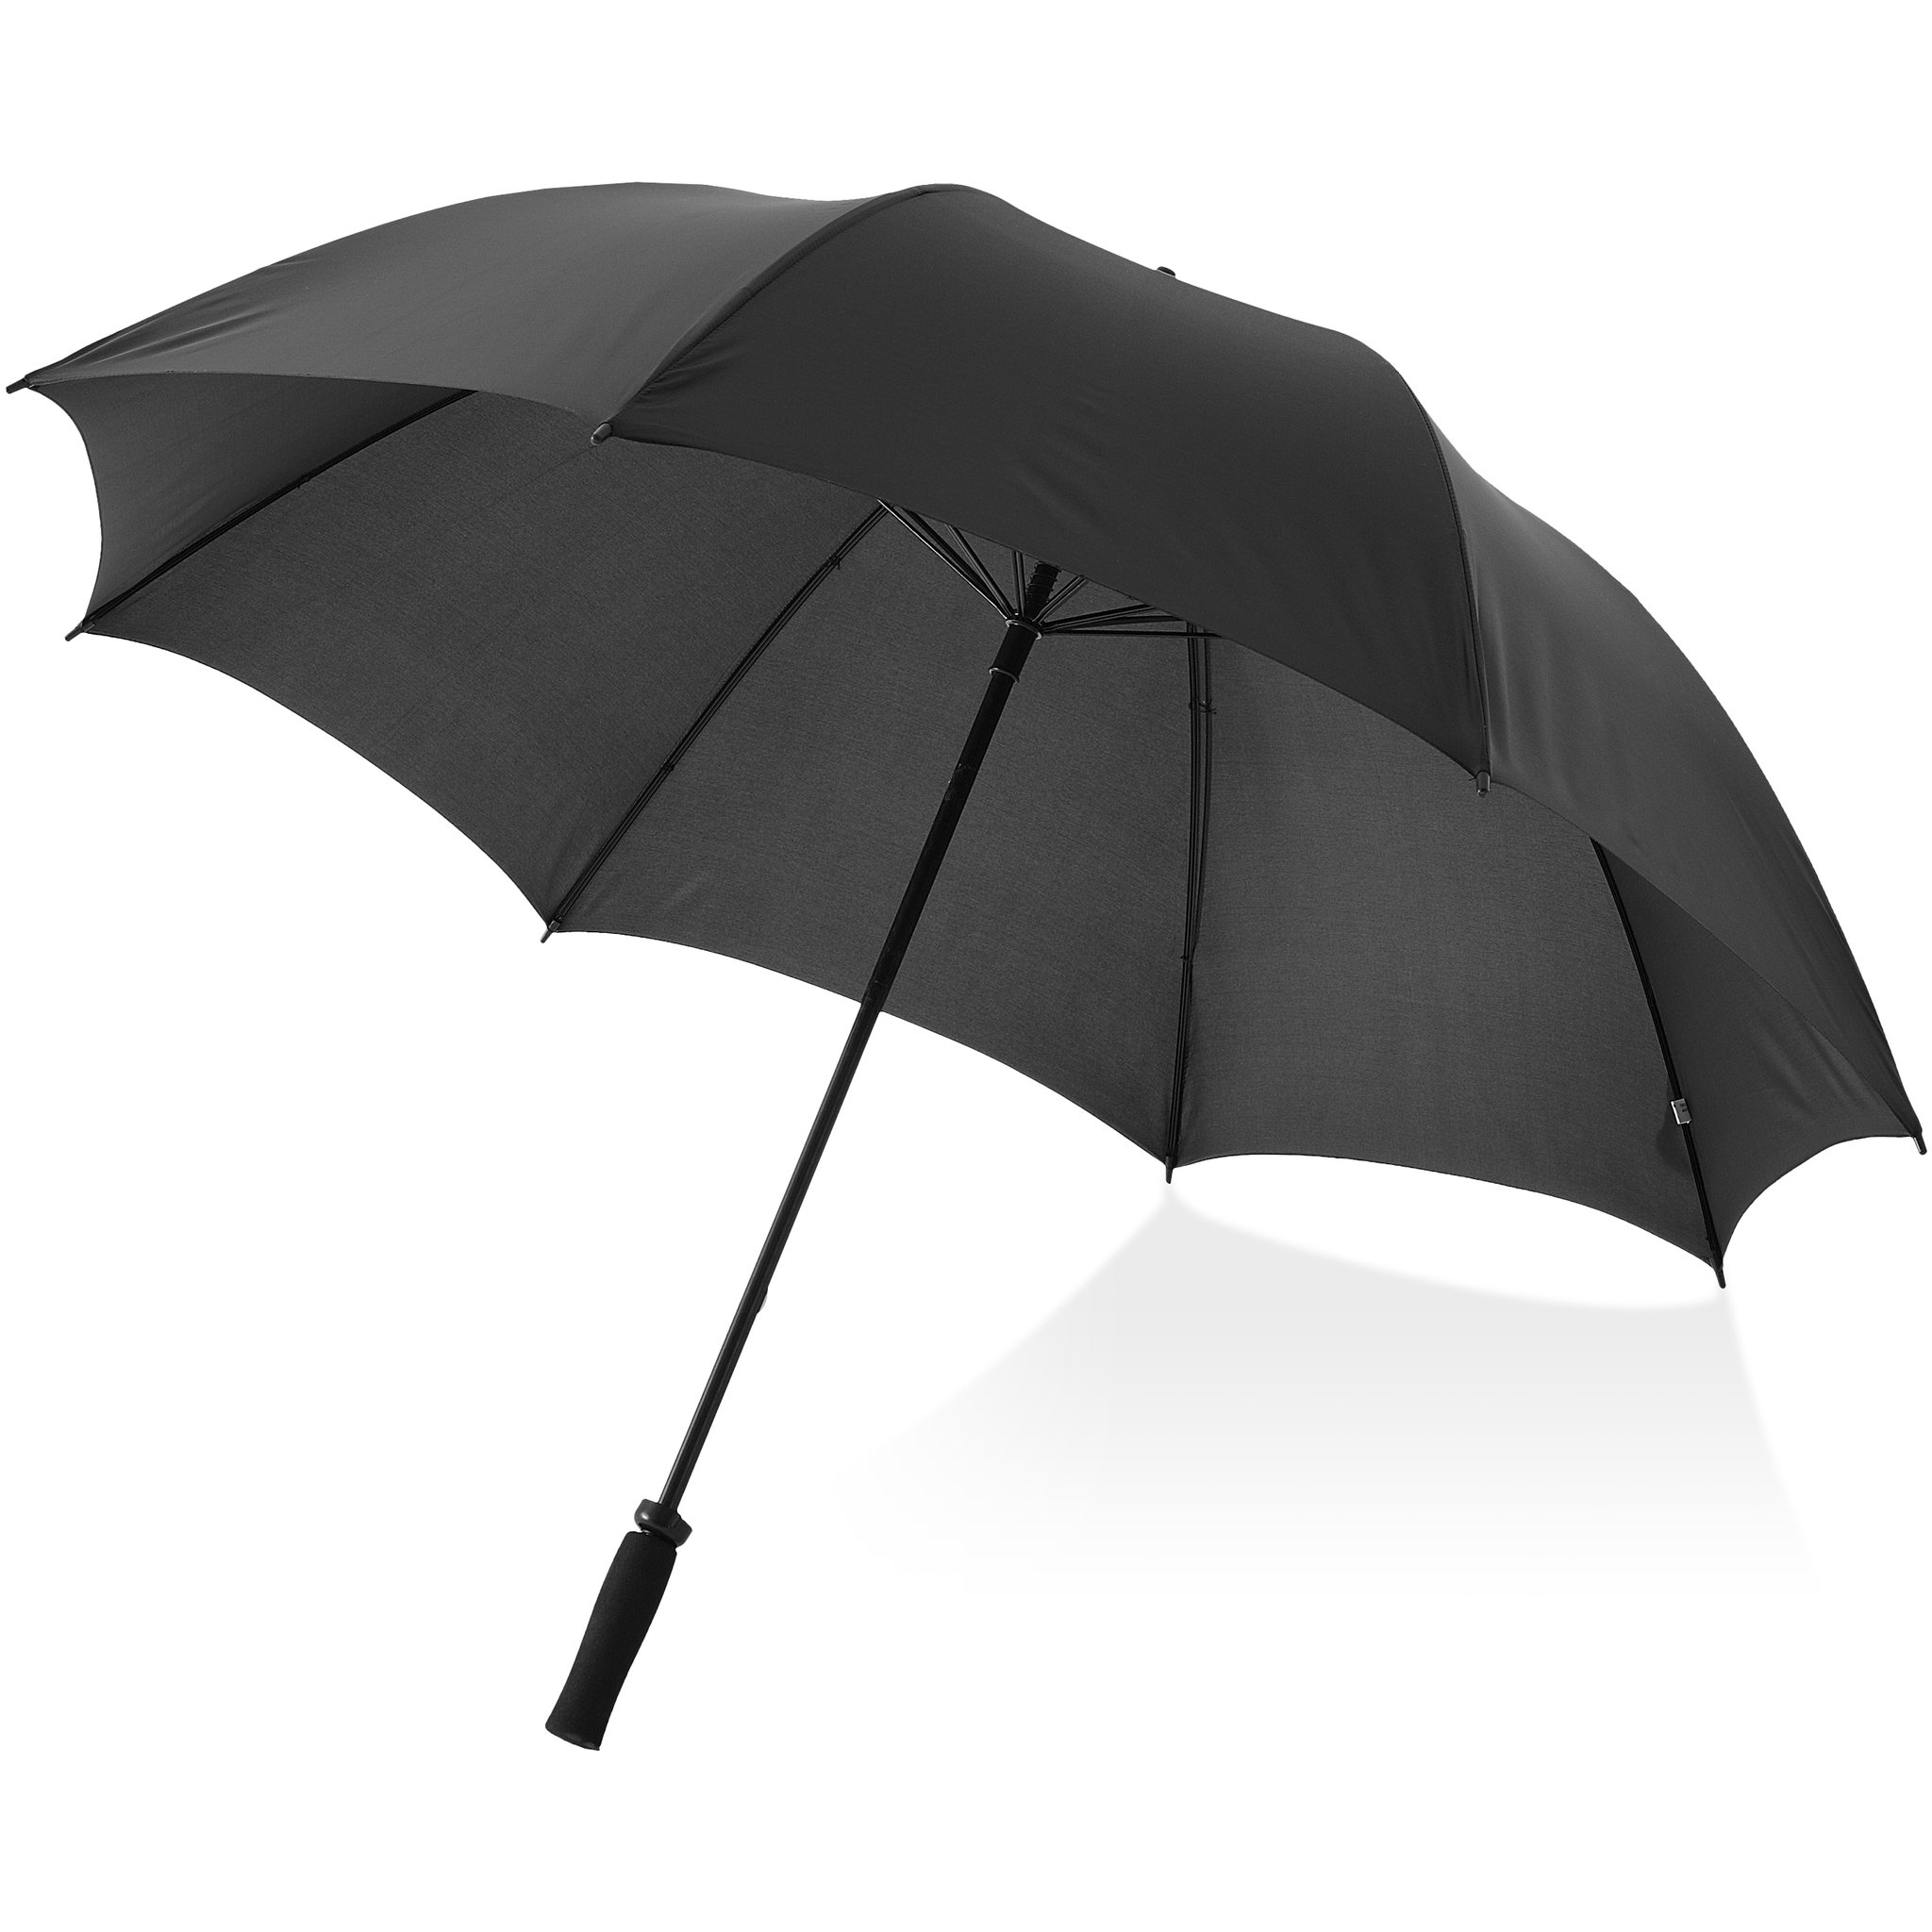 "Bullet Yfke 30"" storm-proof umbrella"